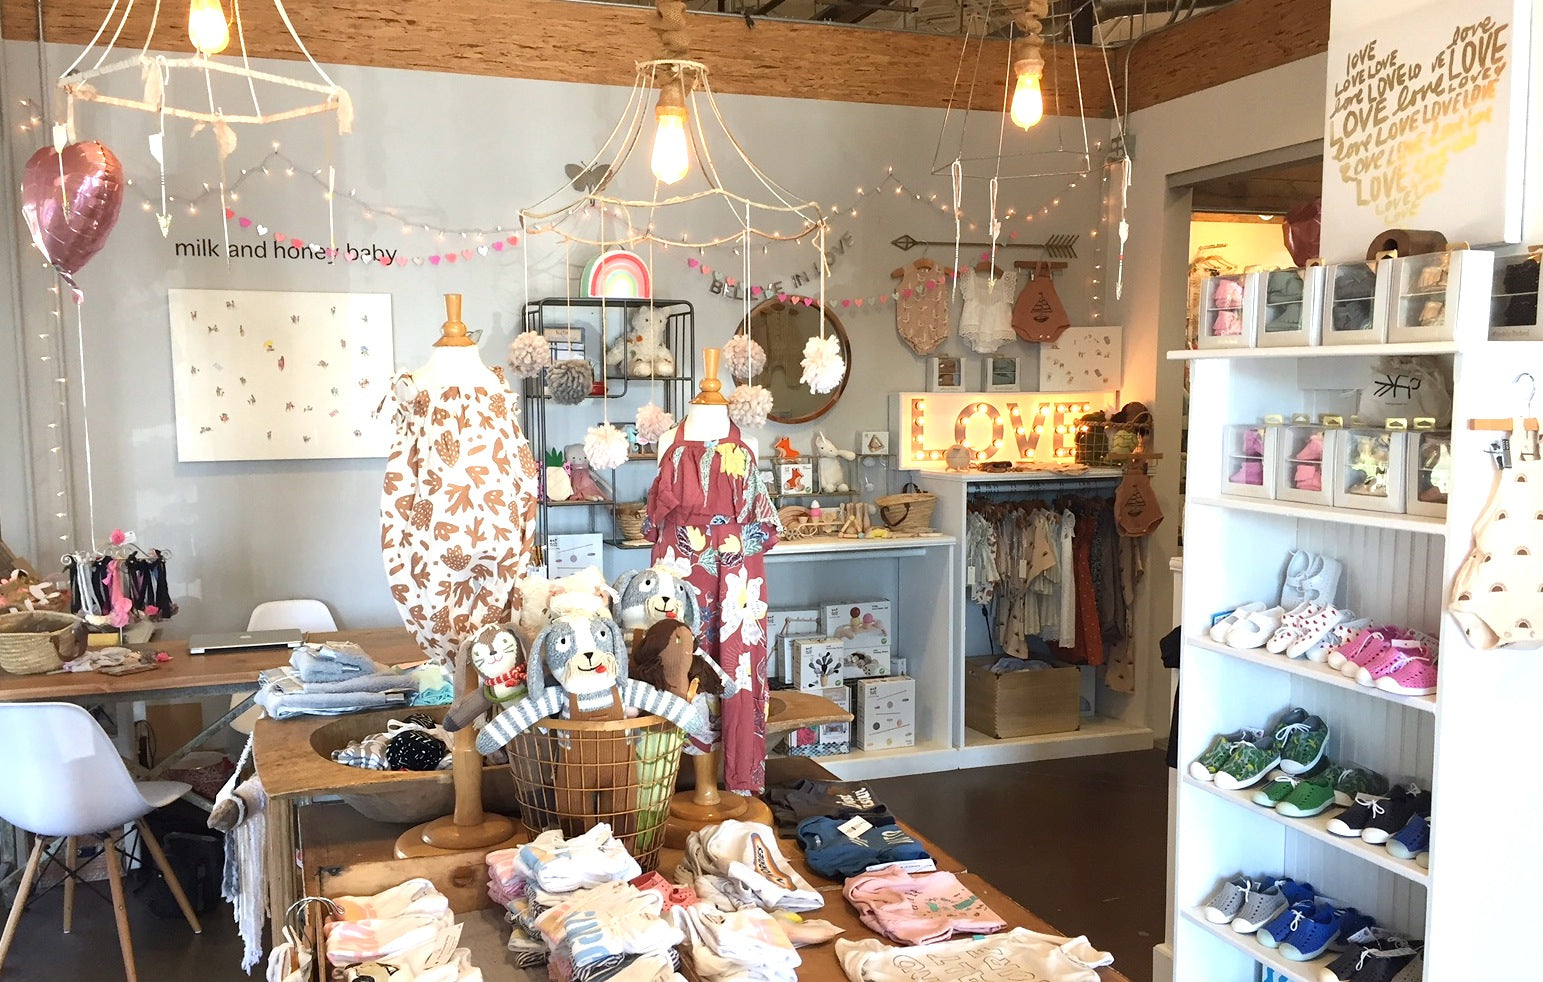 Milk and Honey Baby a beach inspired baby boutique Costa Mesa, CA – milk  and honey baby